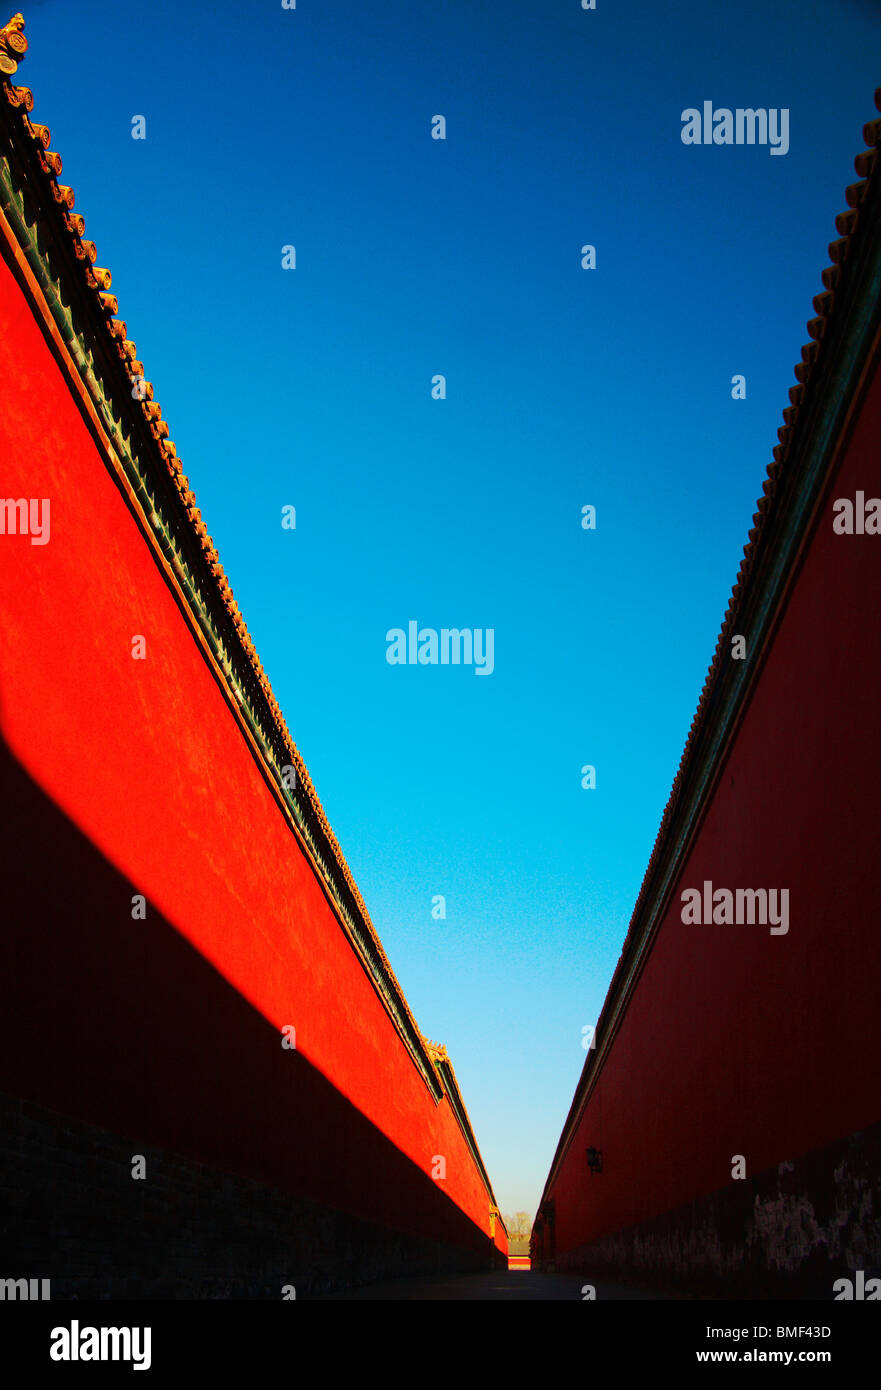 Red palace wall of Forbidden City, Beijing, China Stock Photo